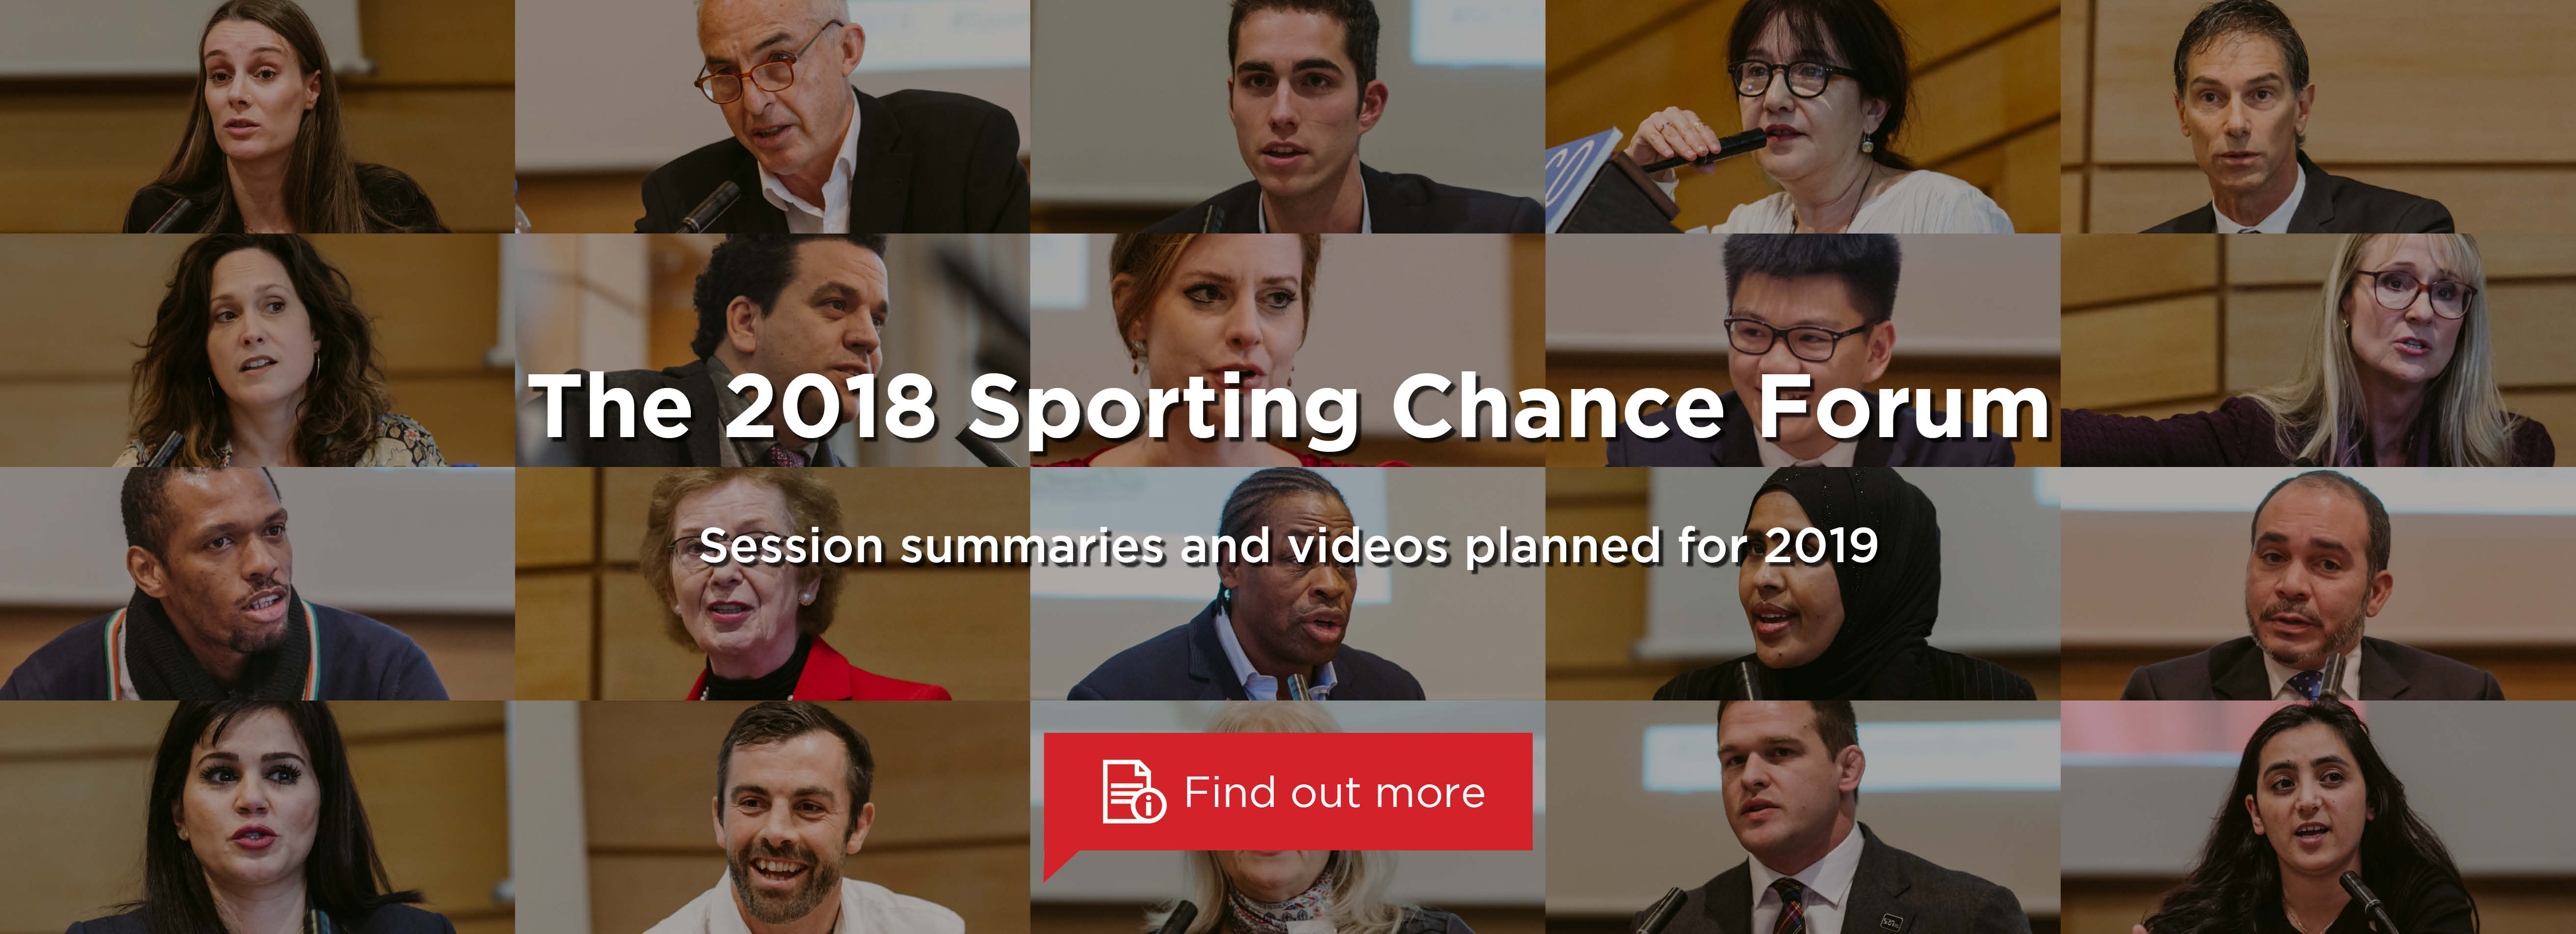 The 2018 Sporting Chance Forum